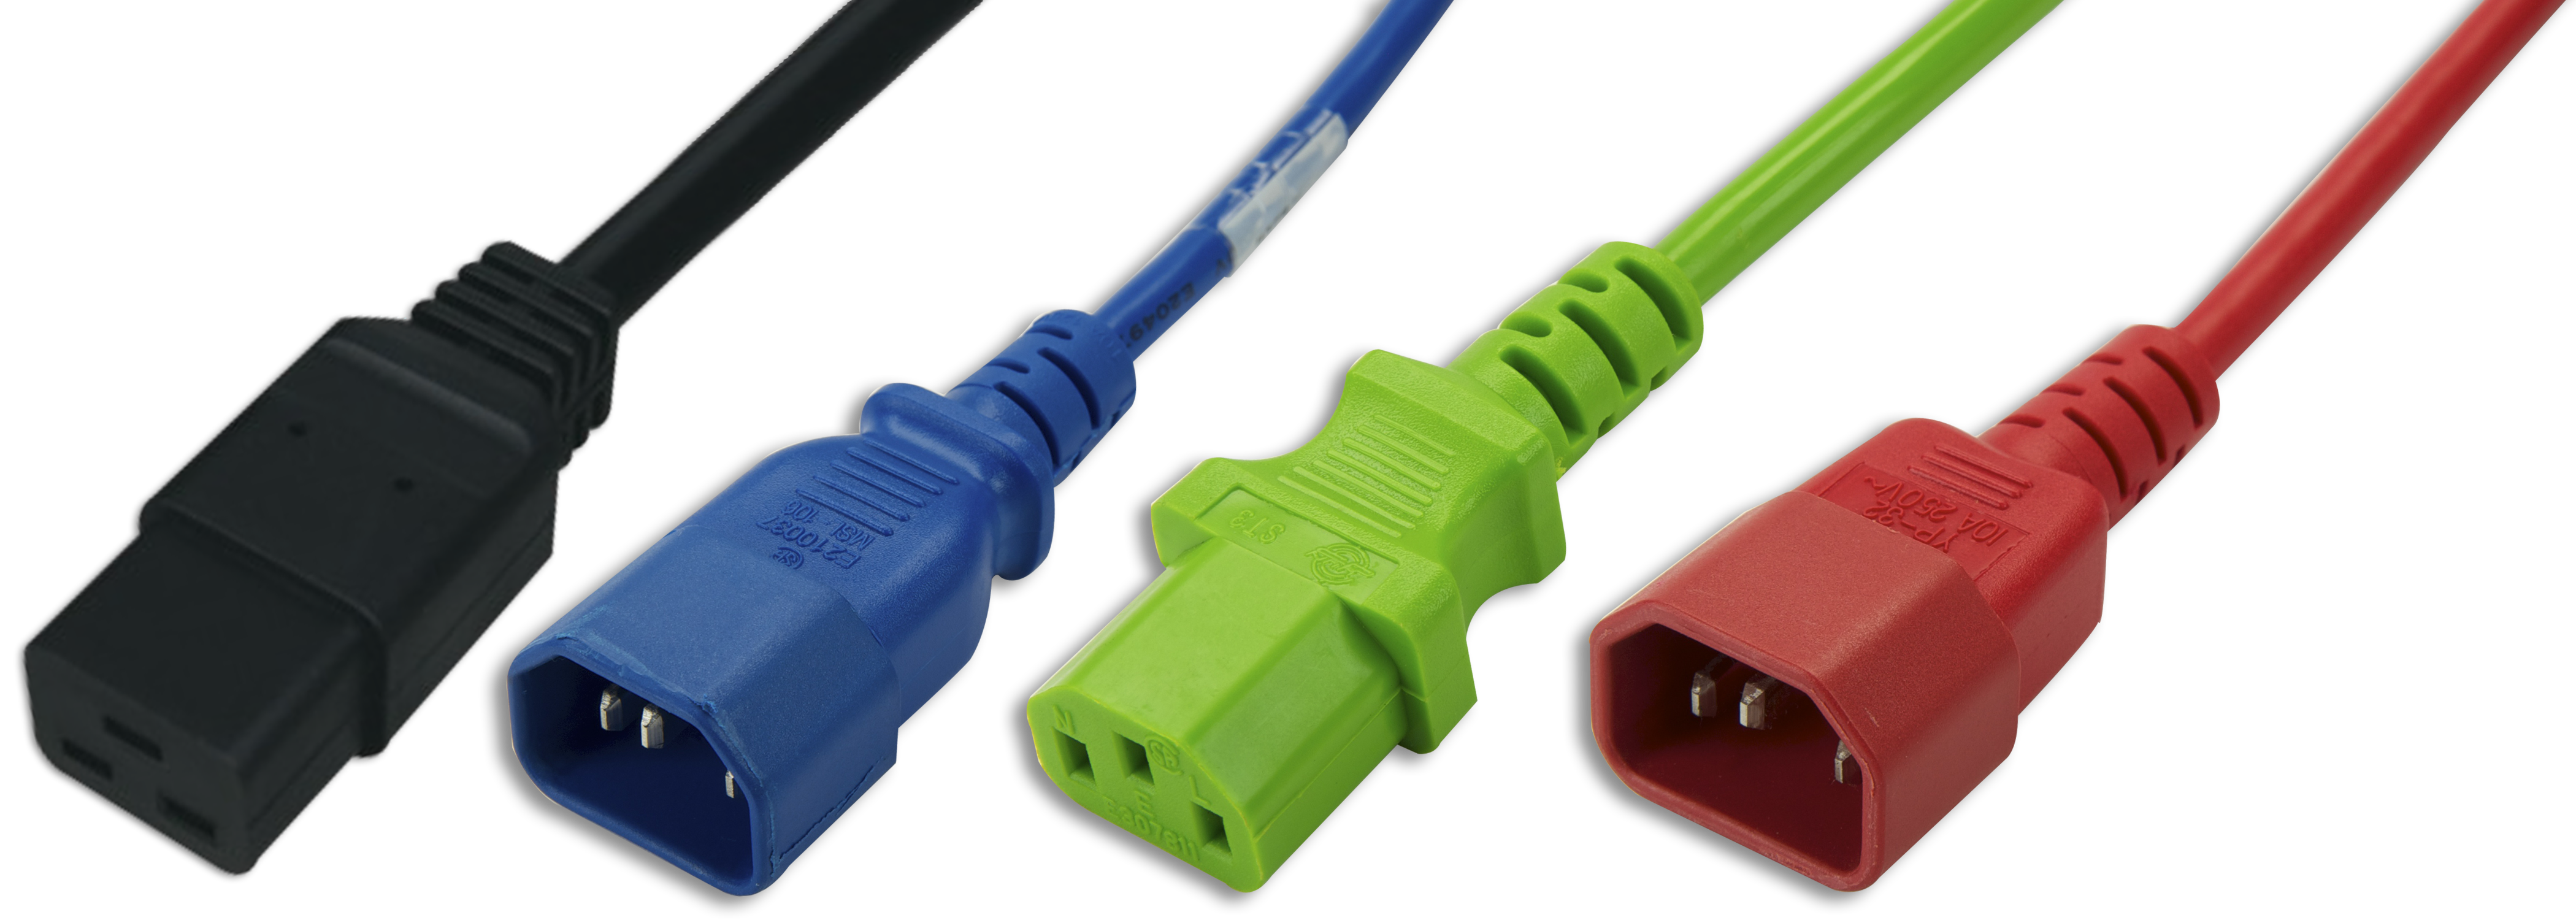 Color Power Cables Gillaspy Associates Wiring Diagram Components